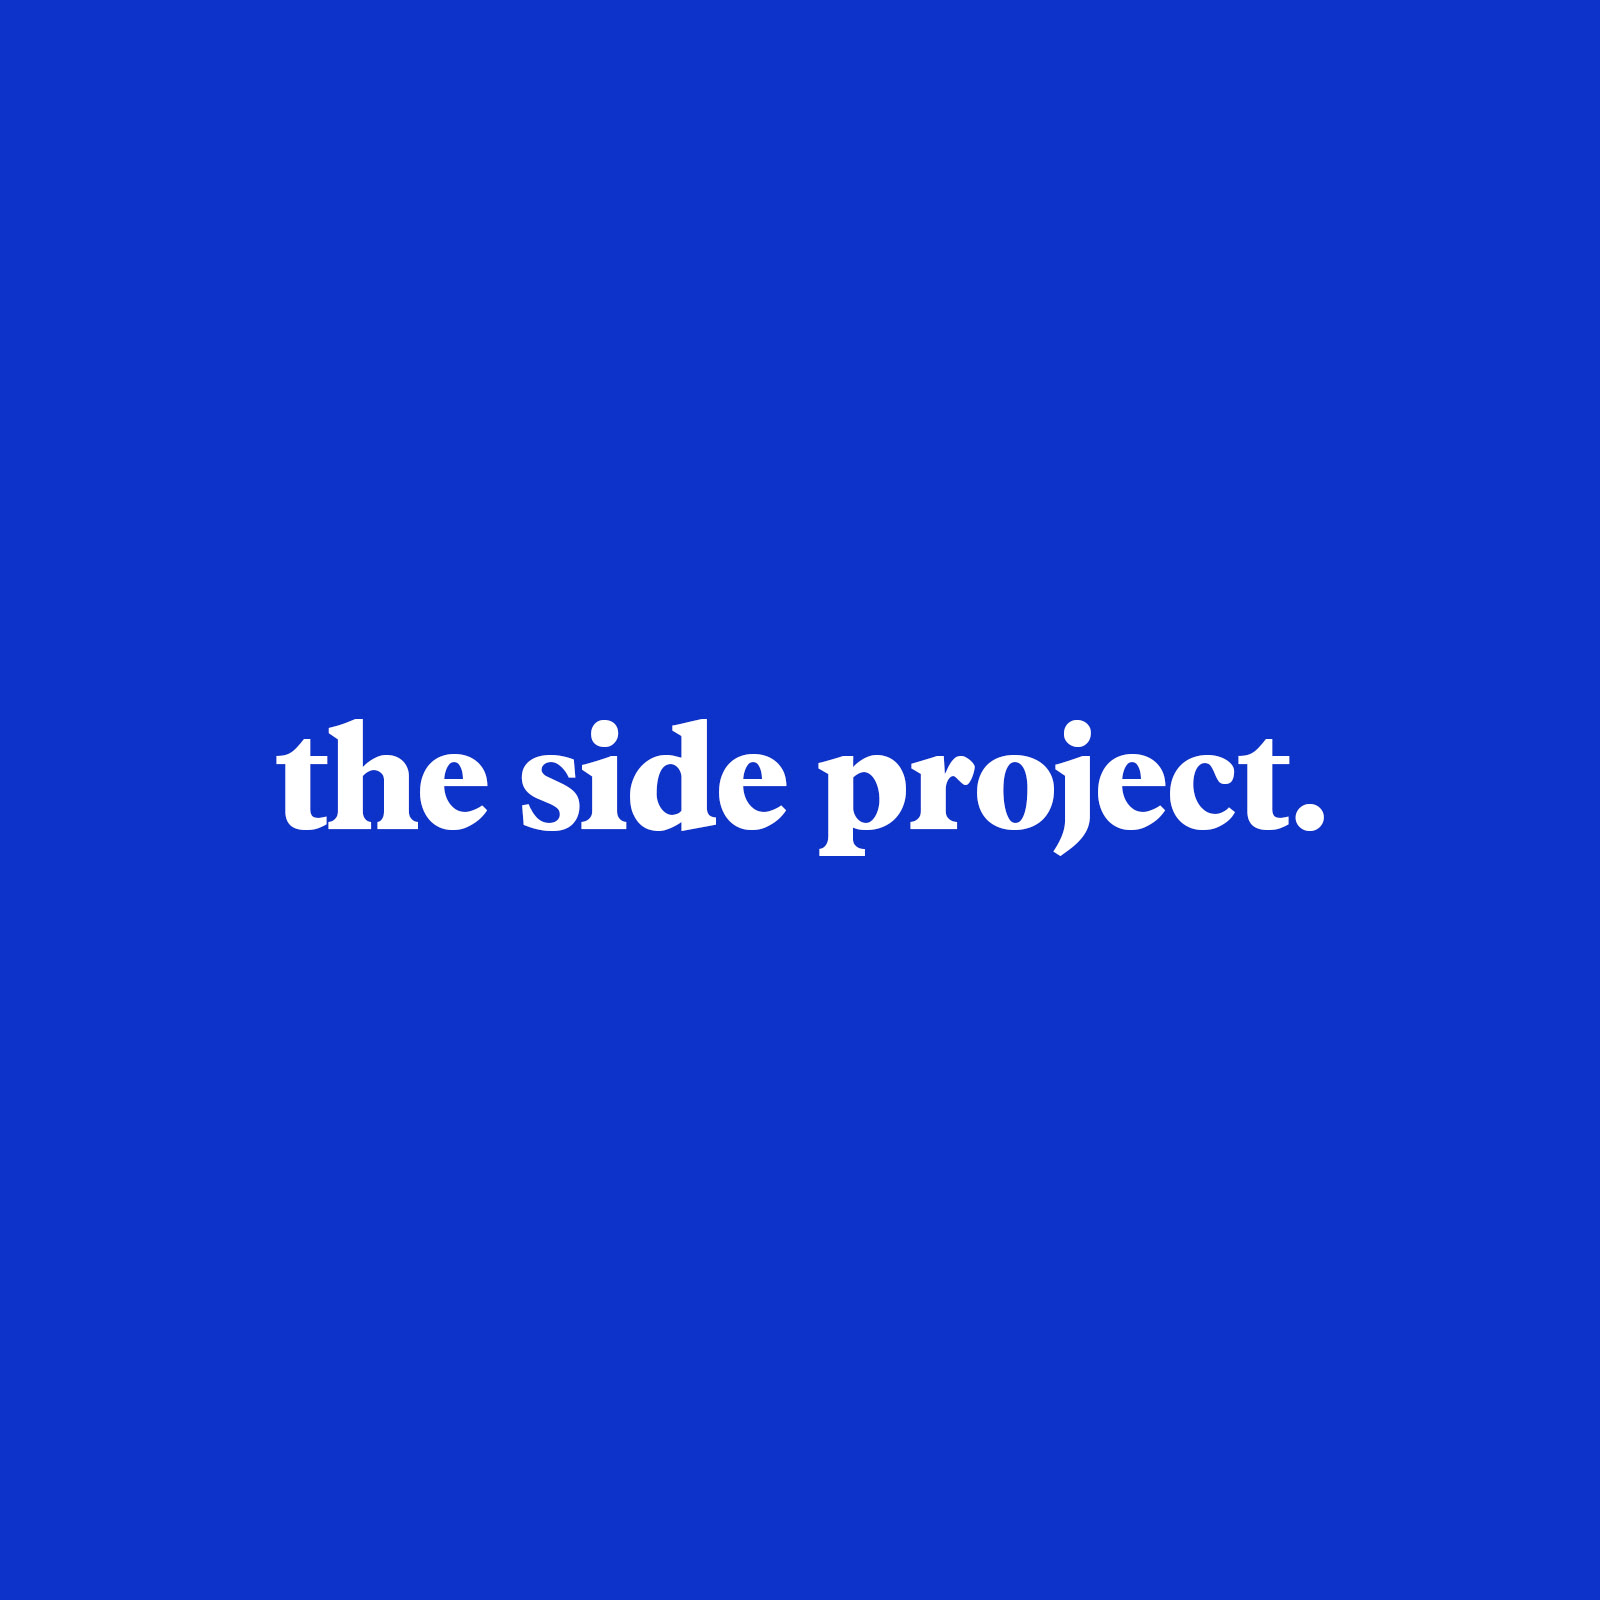 wednesday_april_3rd_br_the_side_project